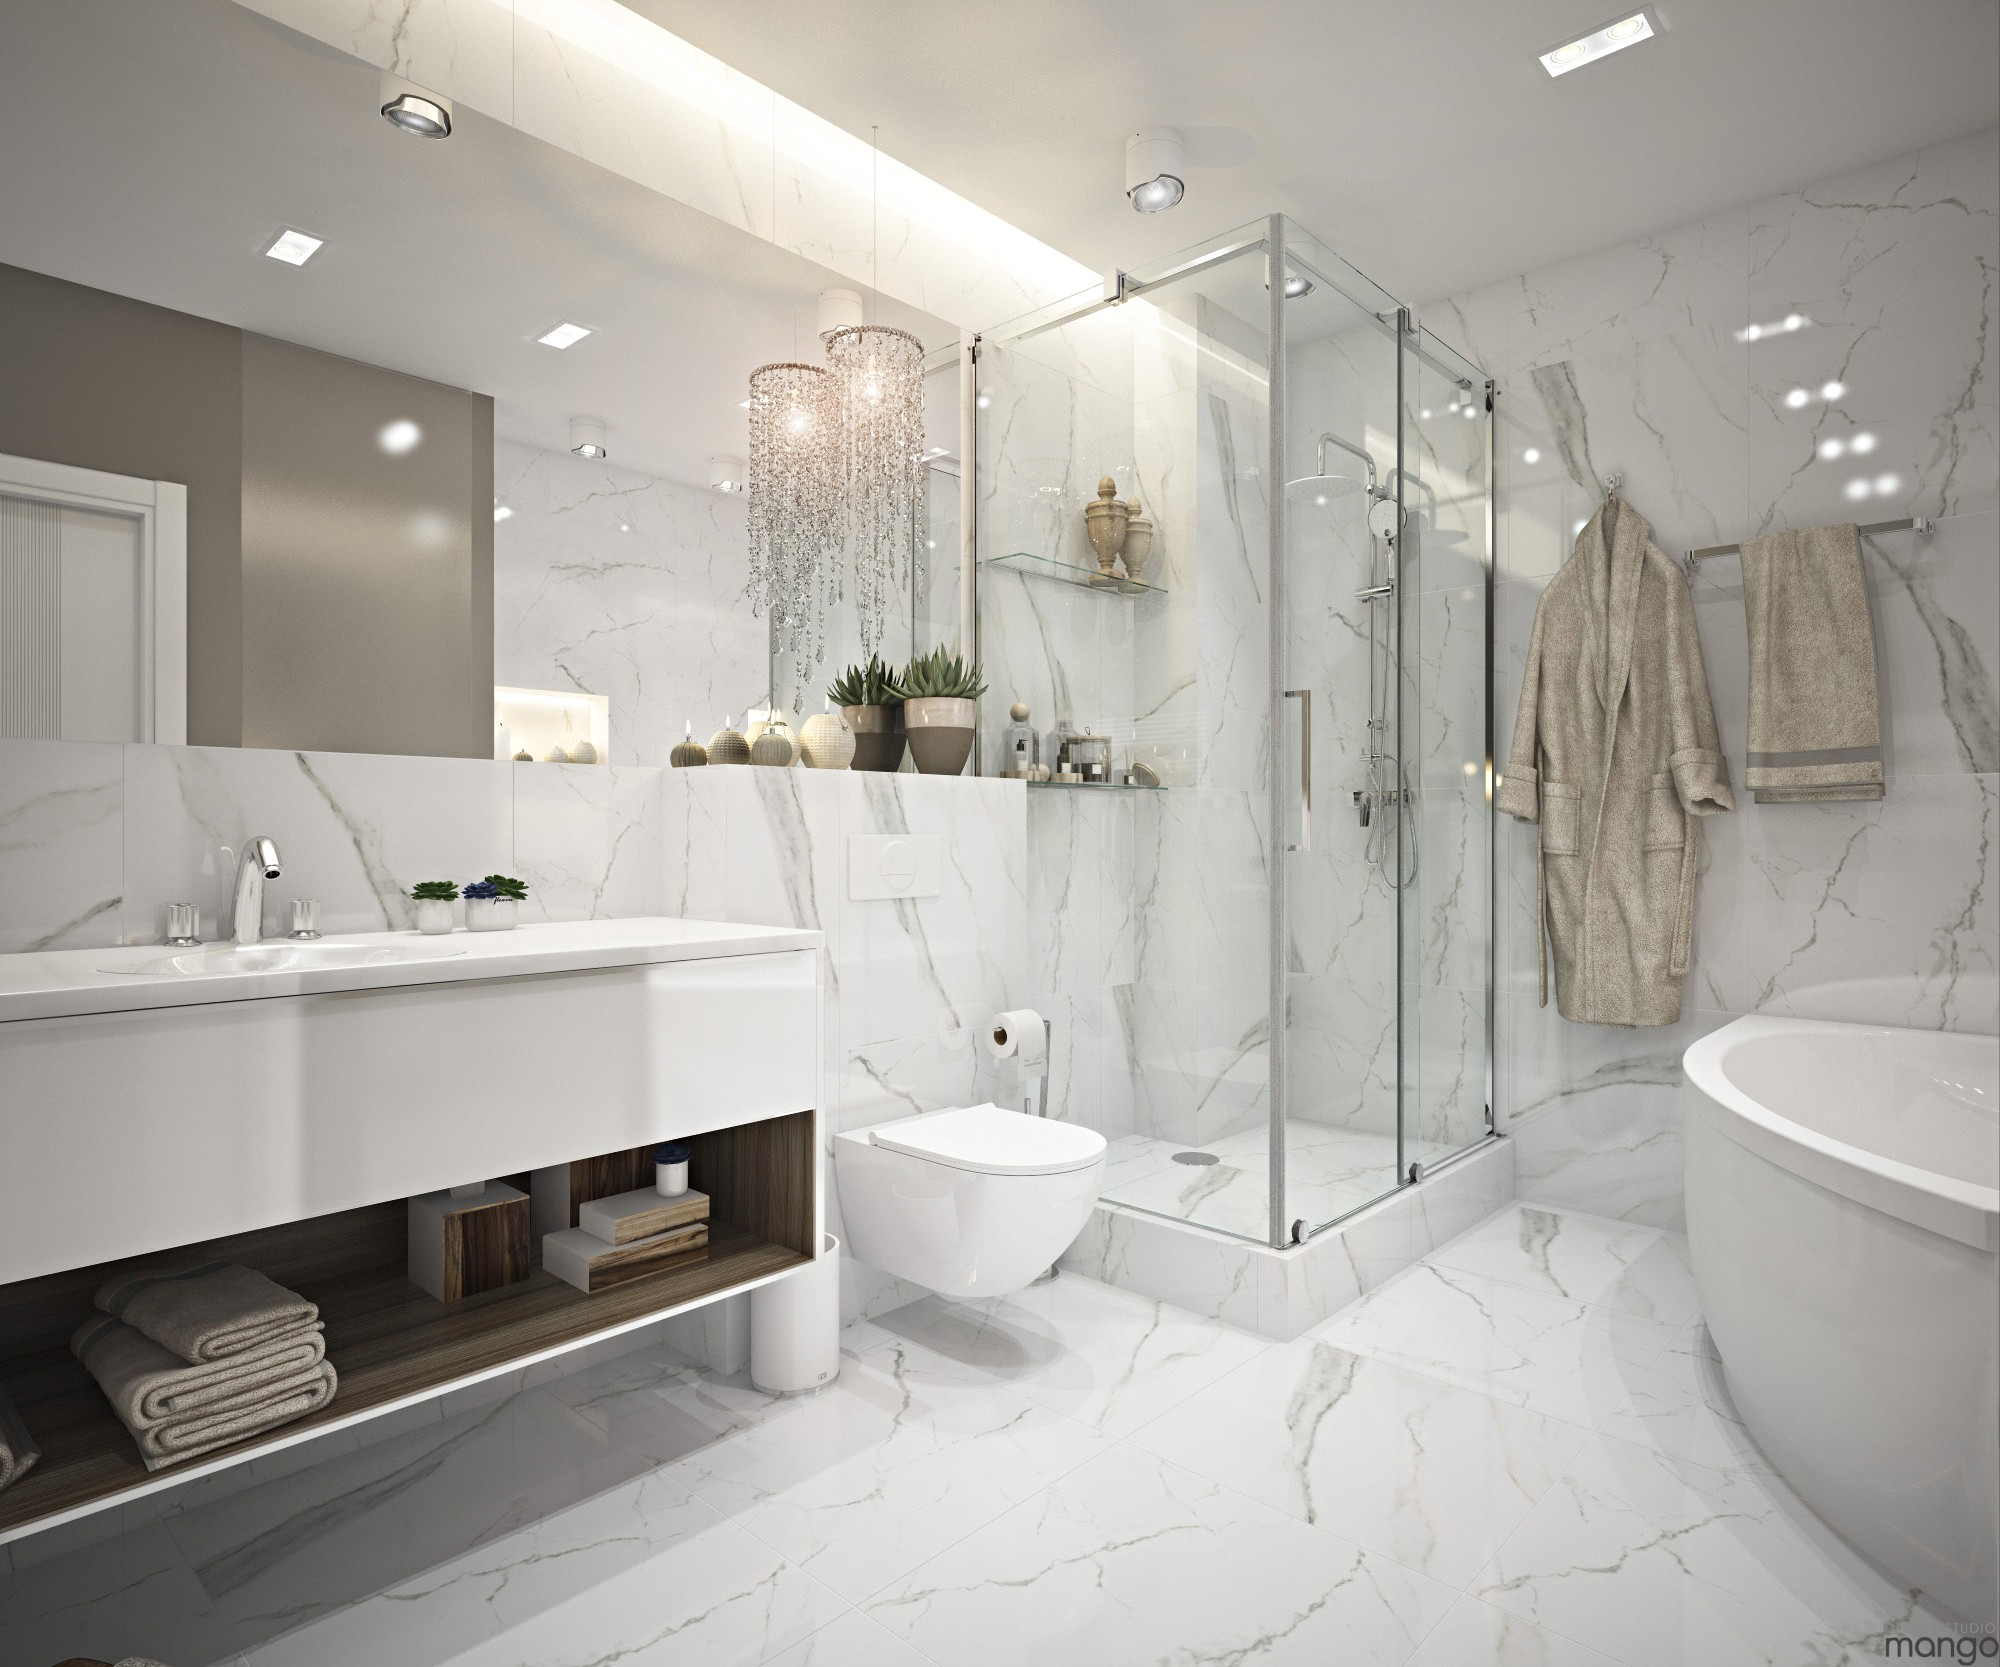 Bathroom Ideas: Minimalist Bathroom Design Ideas Which Combine With Simple